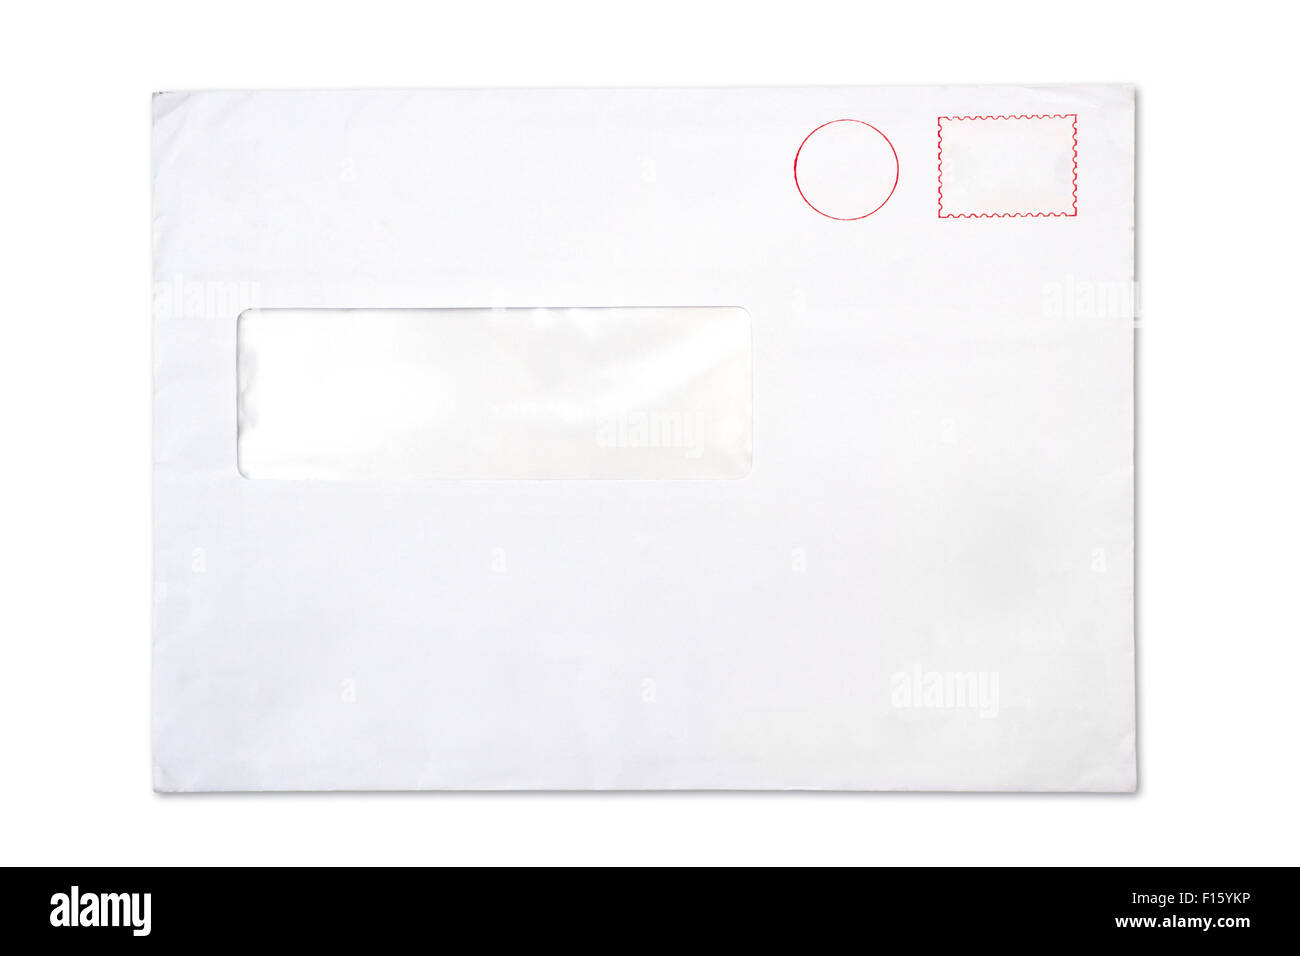 empty blank Envelope with a window, isolated on white - Stock Image